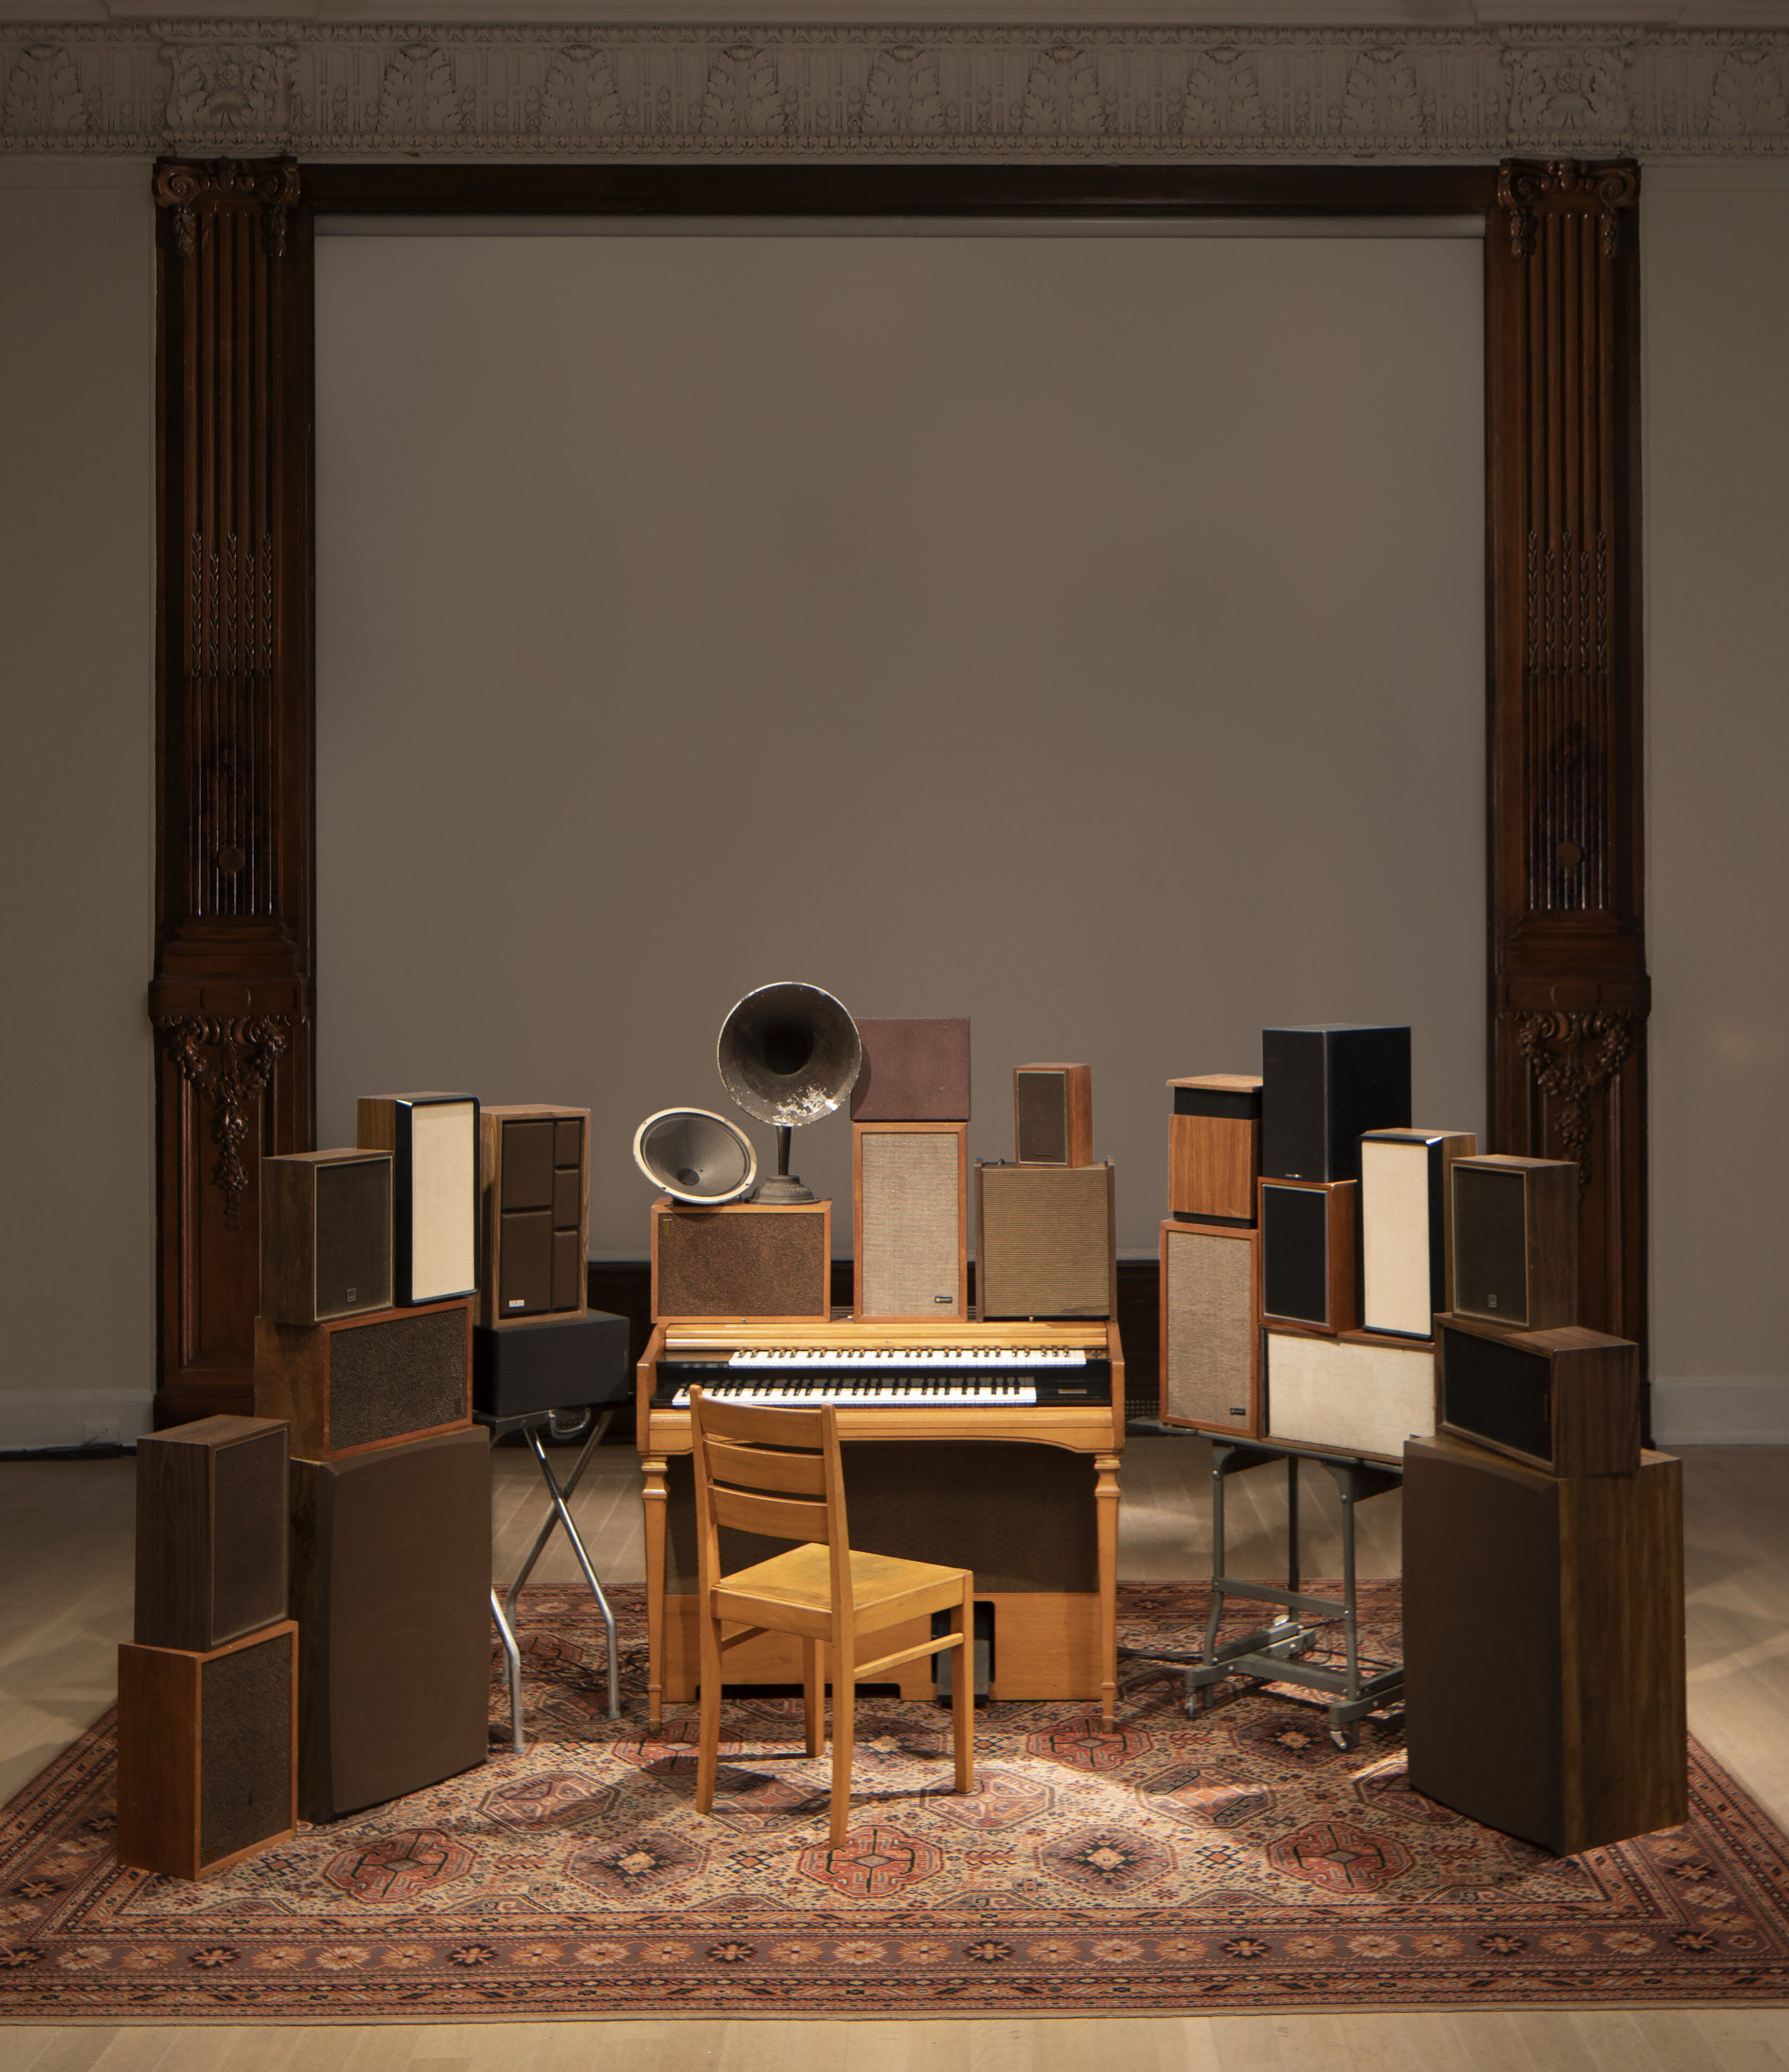 Janet Cardiff and George Bures Miller,  The Poetry Machine ,     2017. Interactive audio/mixed-media installation including organ, speakers, carpet, computer and electronics. All poetry written and performed by Leonard Cohen from  Book of Longing , published in 2006 by McClelland & Stewart. Photograph: Frederick Charles